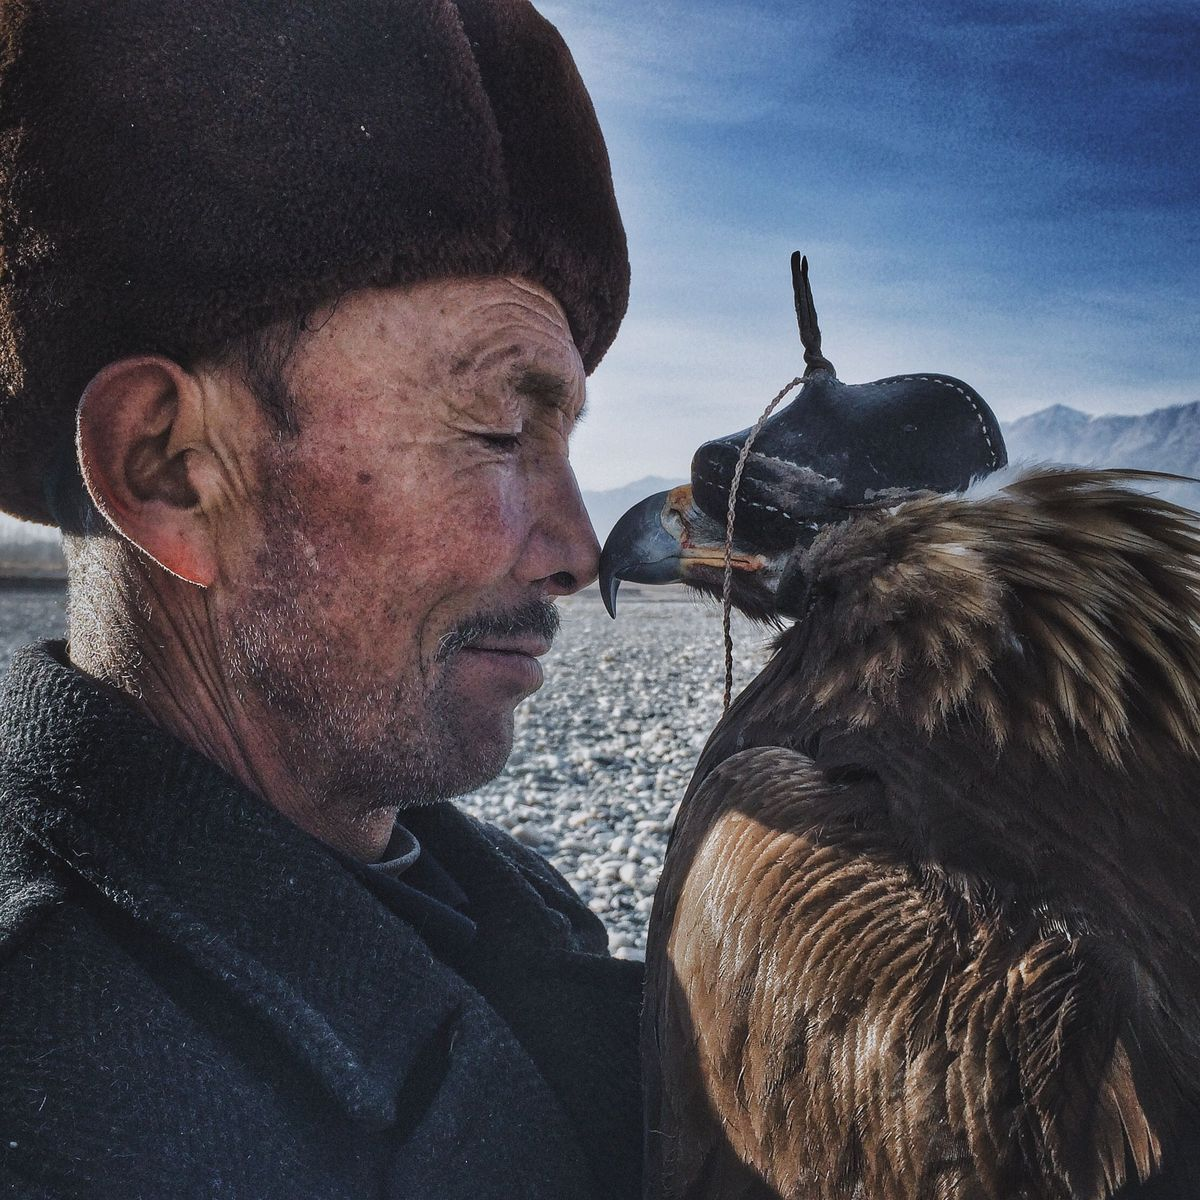 iPhone Photography Awards 1